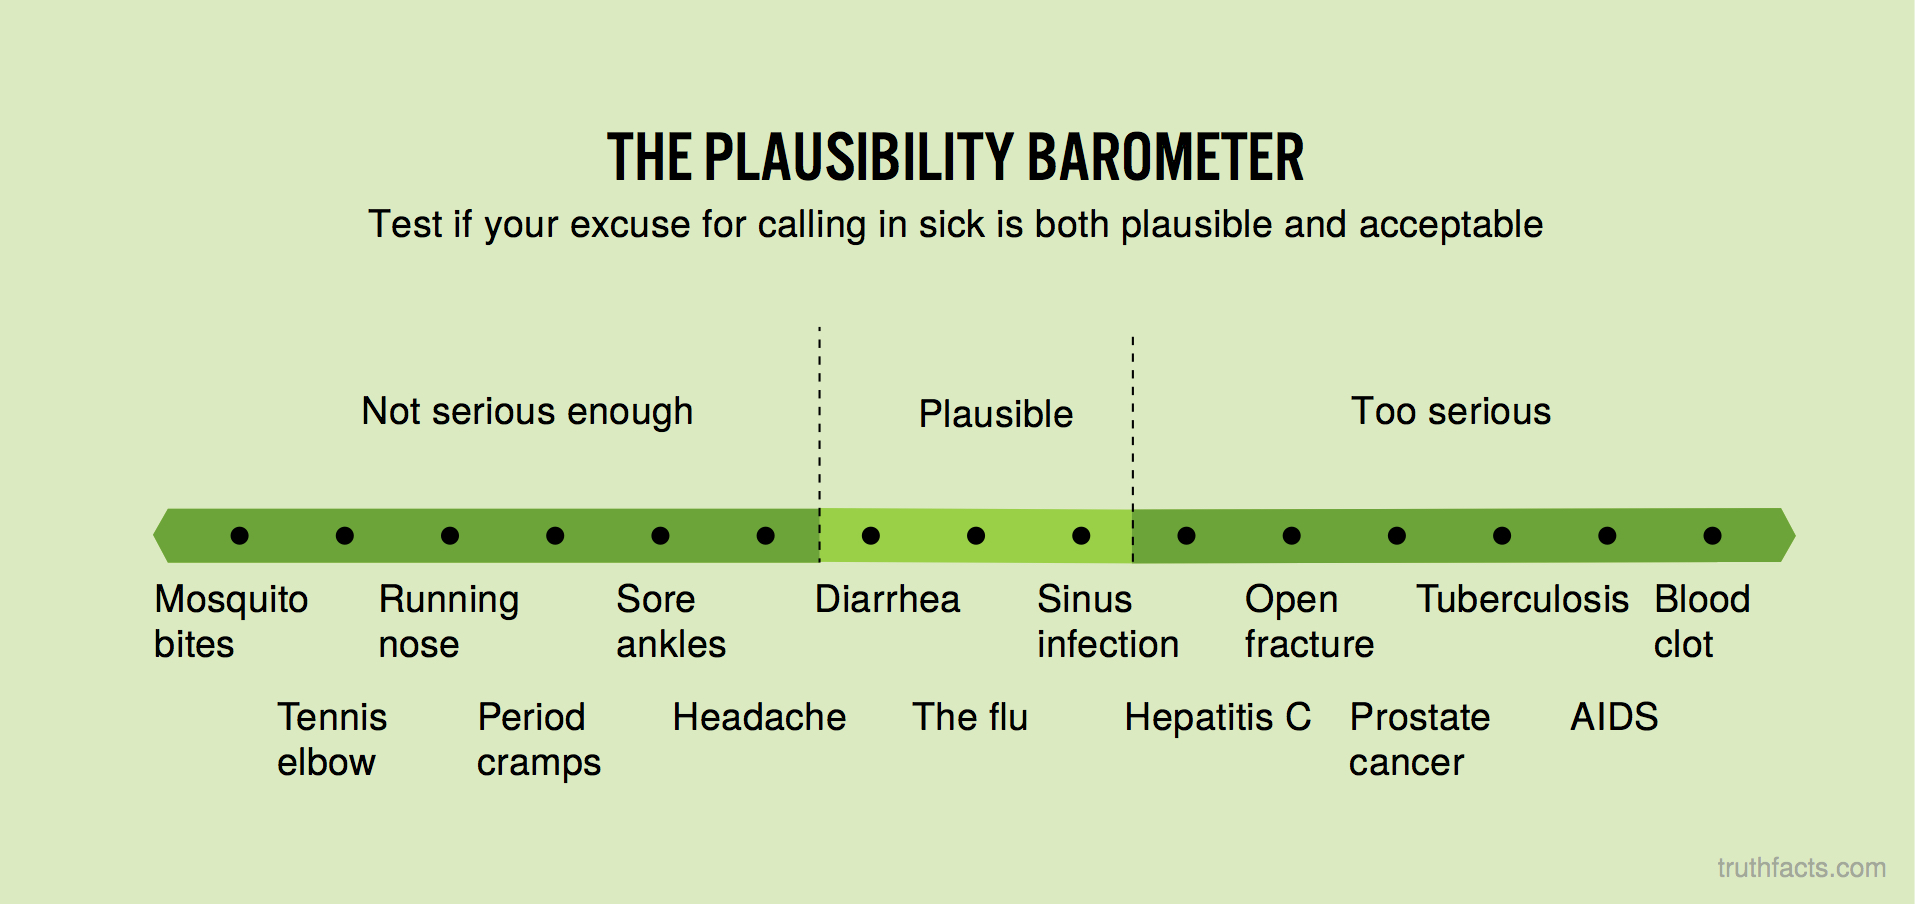 The plausibility barometer